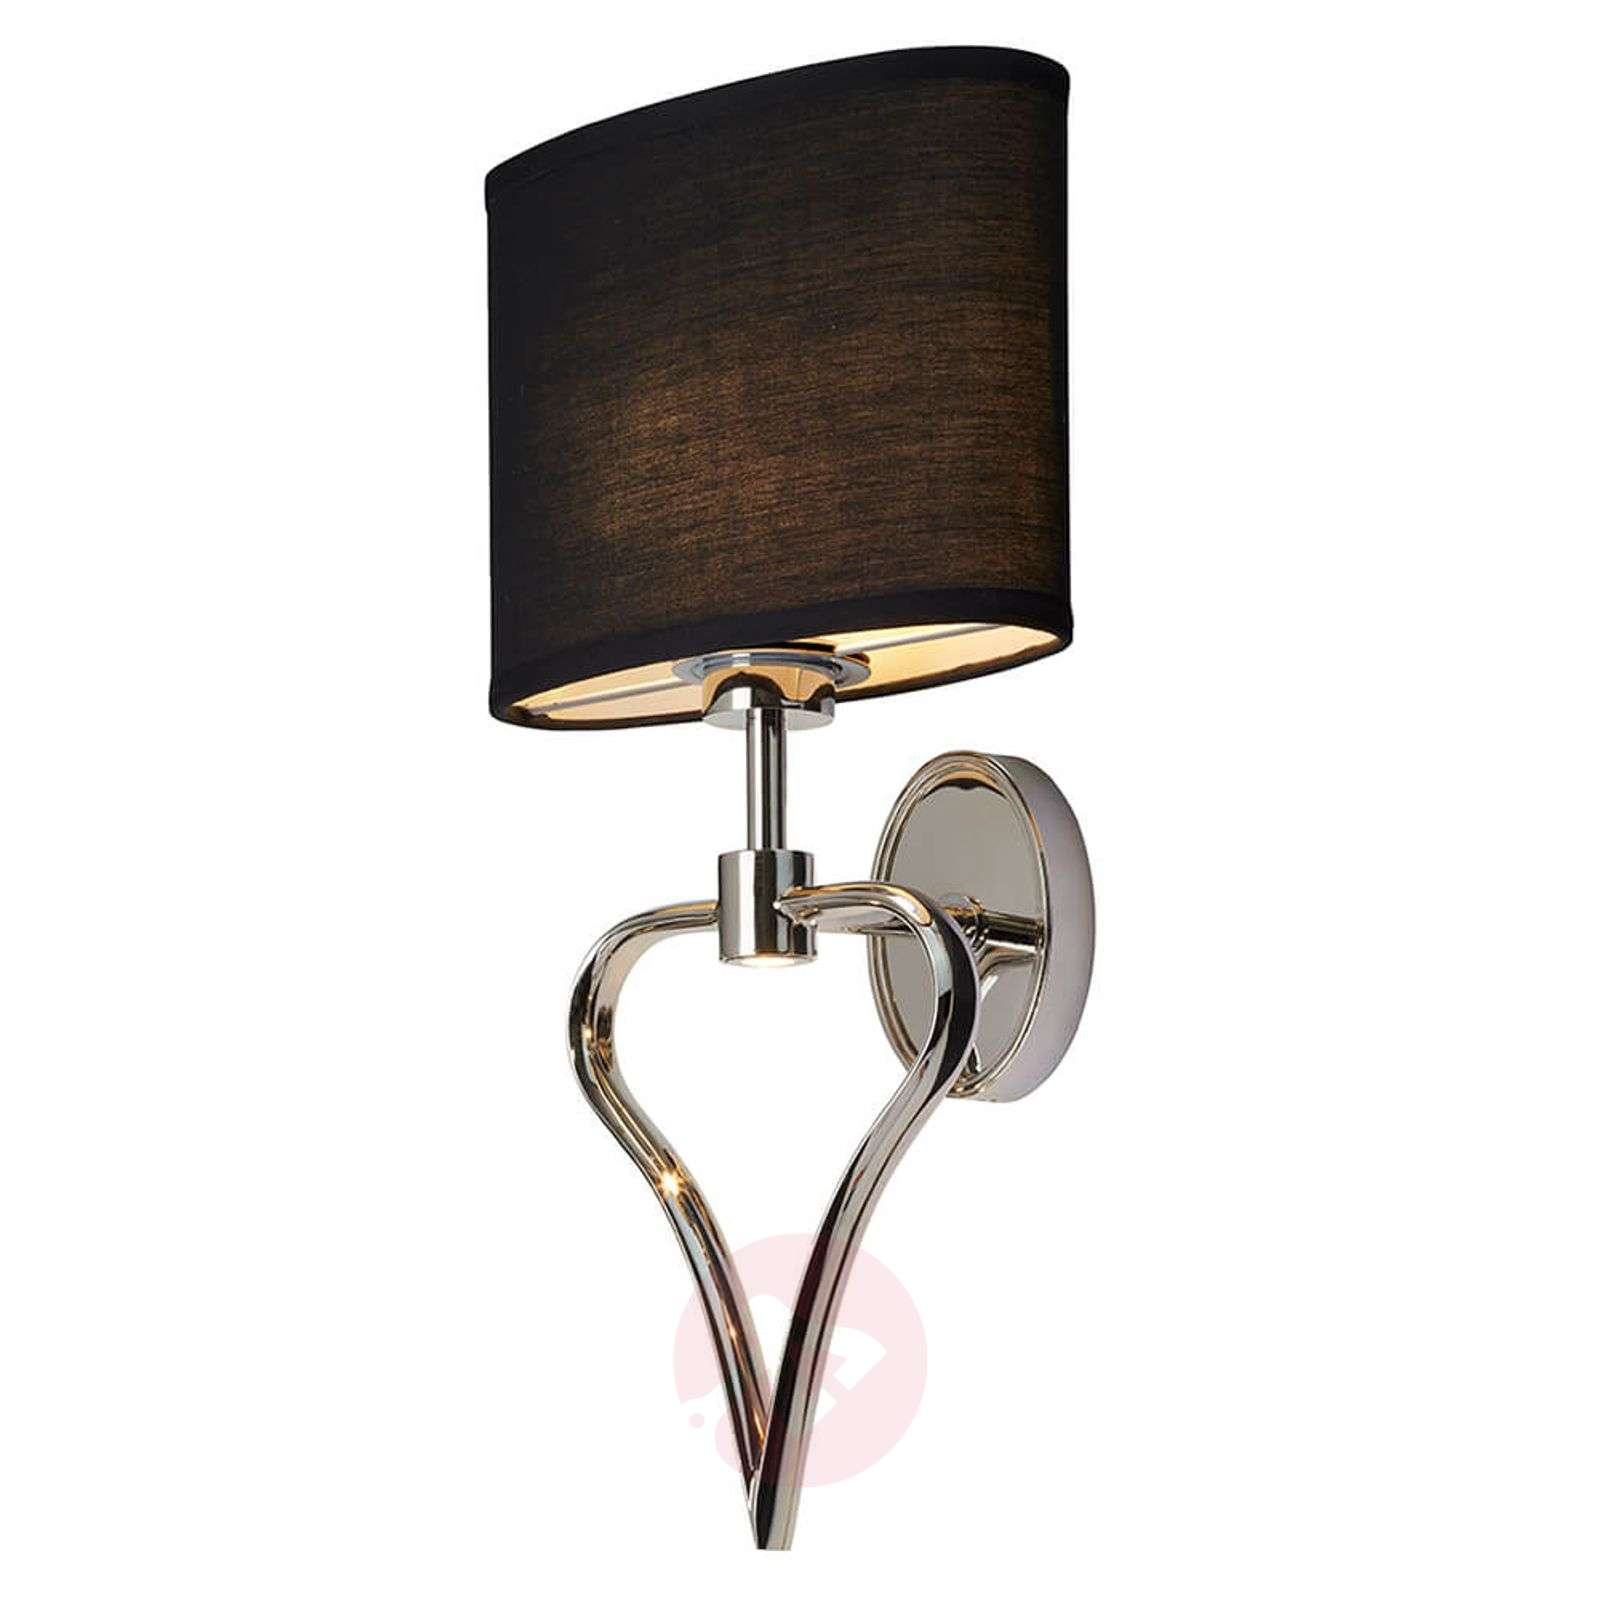 Black lampshade wall lamp Falmouth with LED-3048741-01